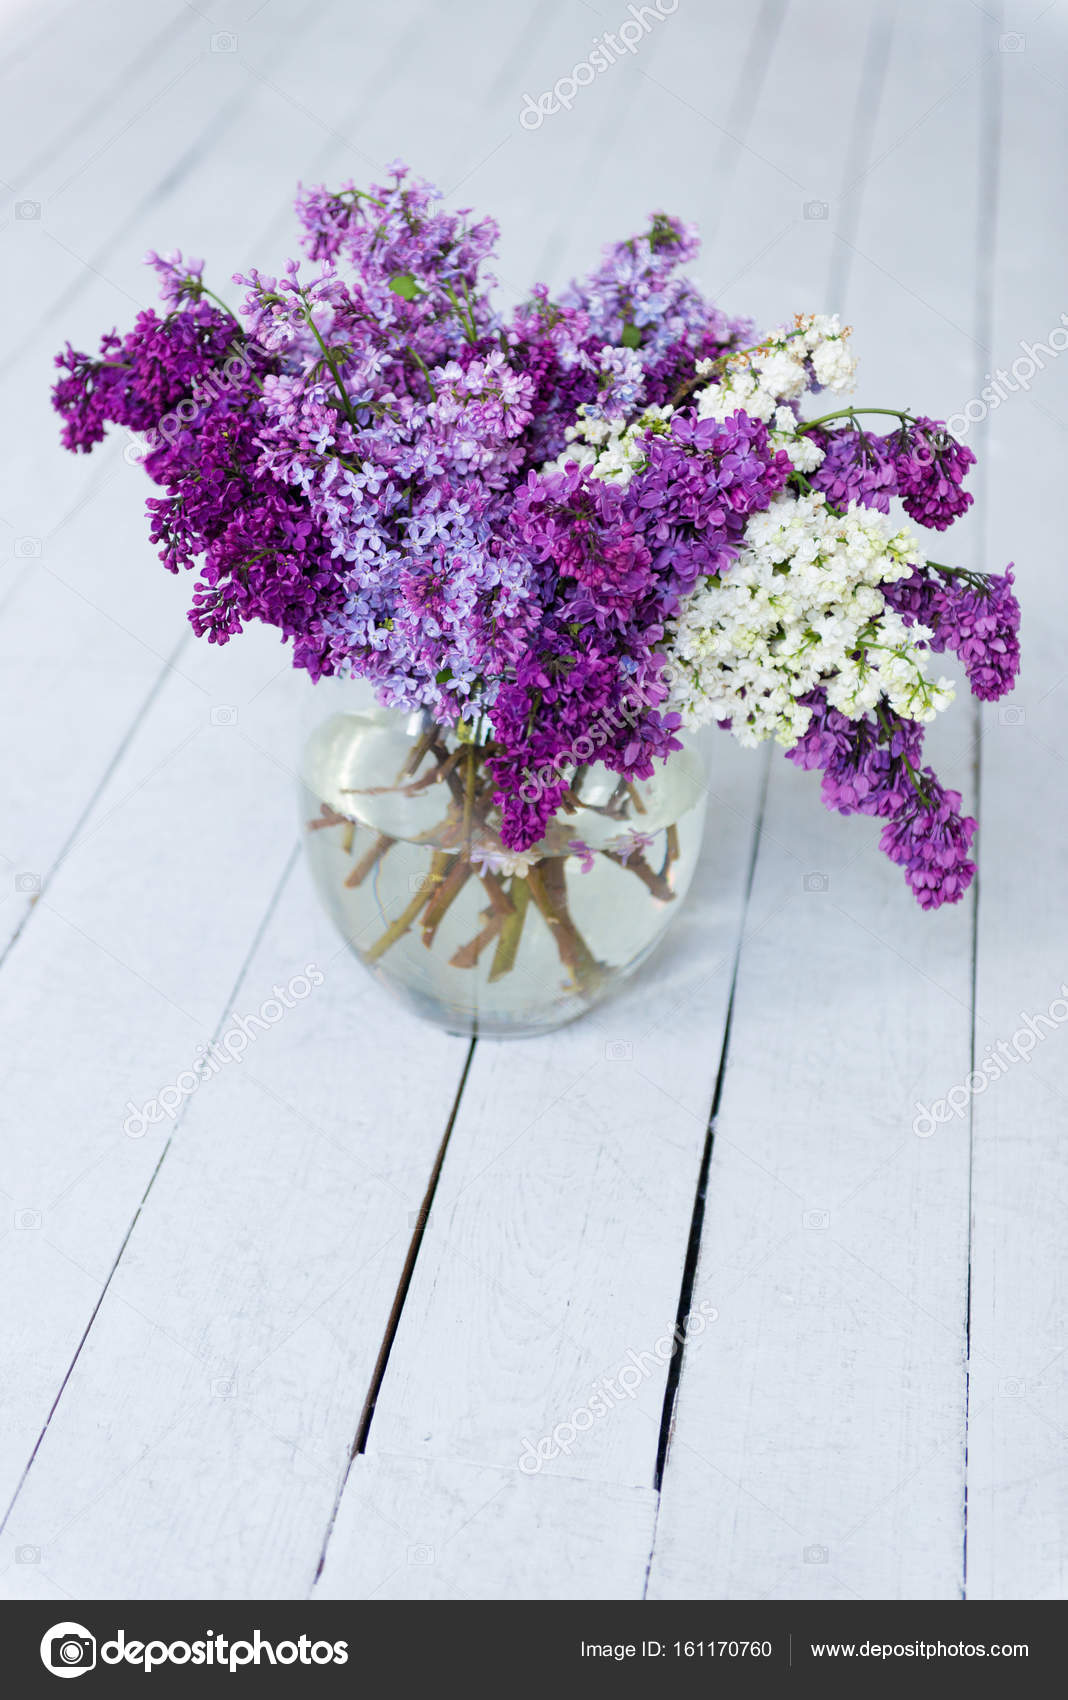 A bouquet of fresh lilac flowers in a glass vase on a wooden floor ...